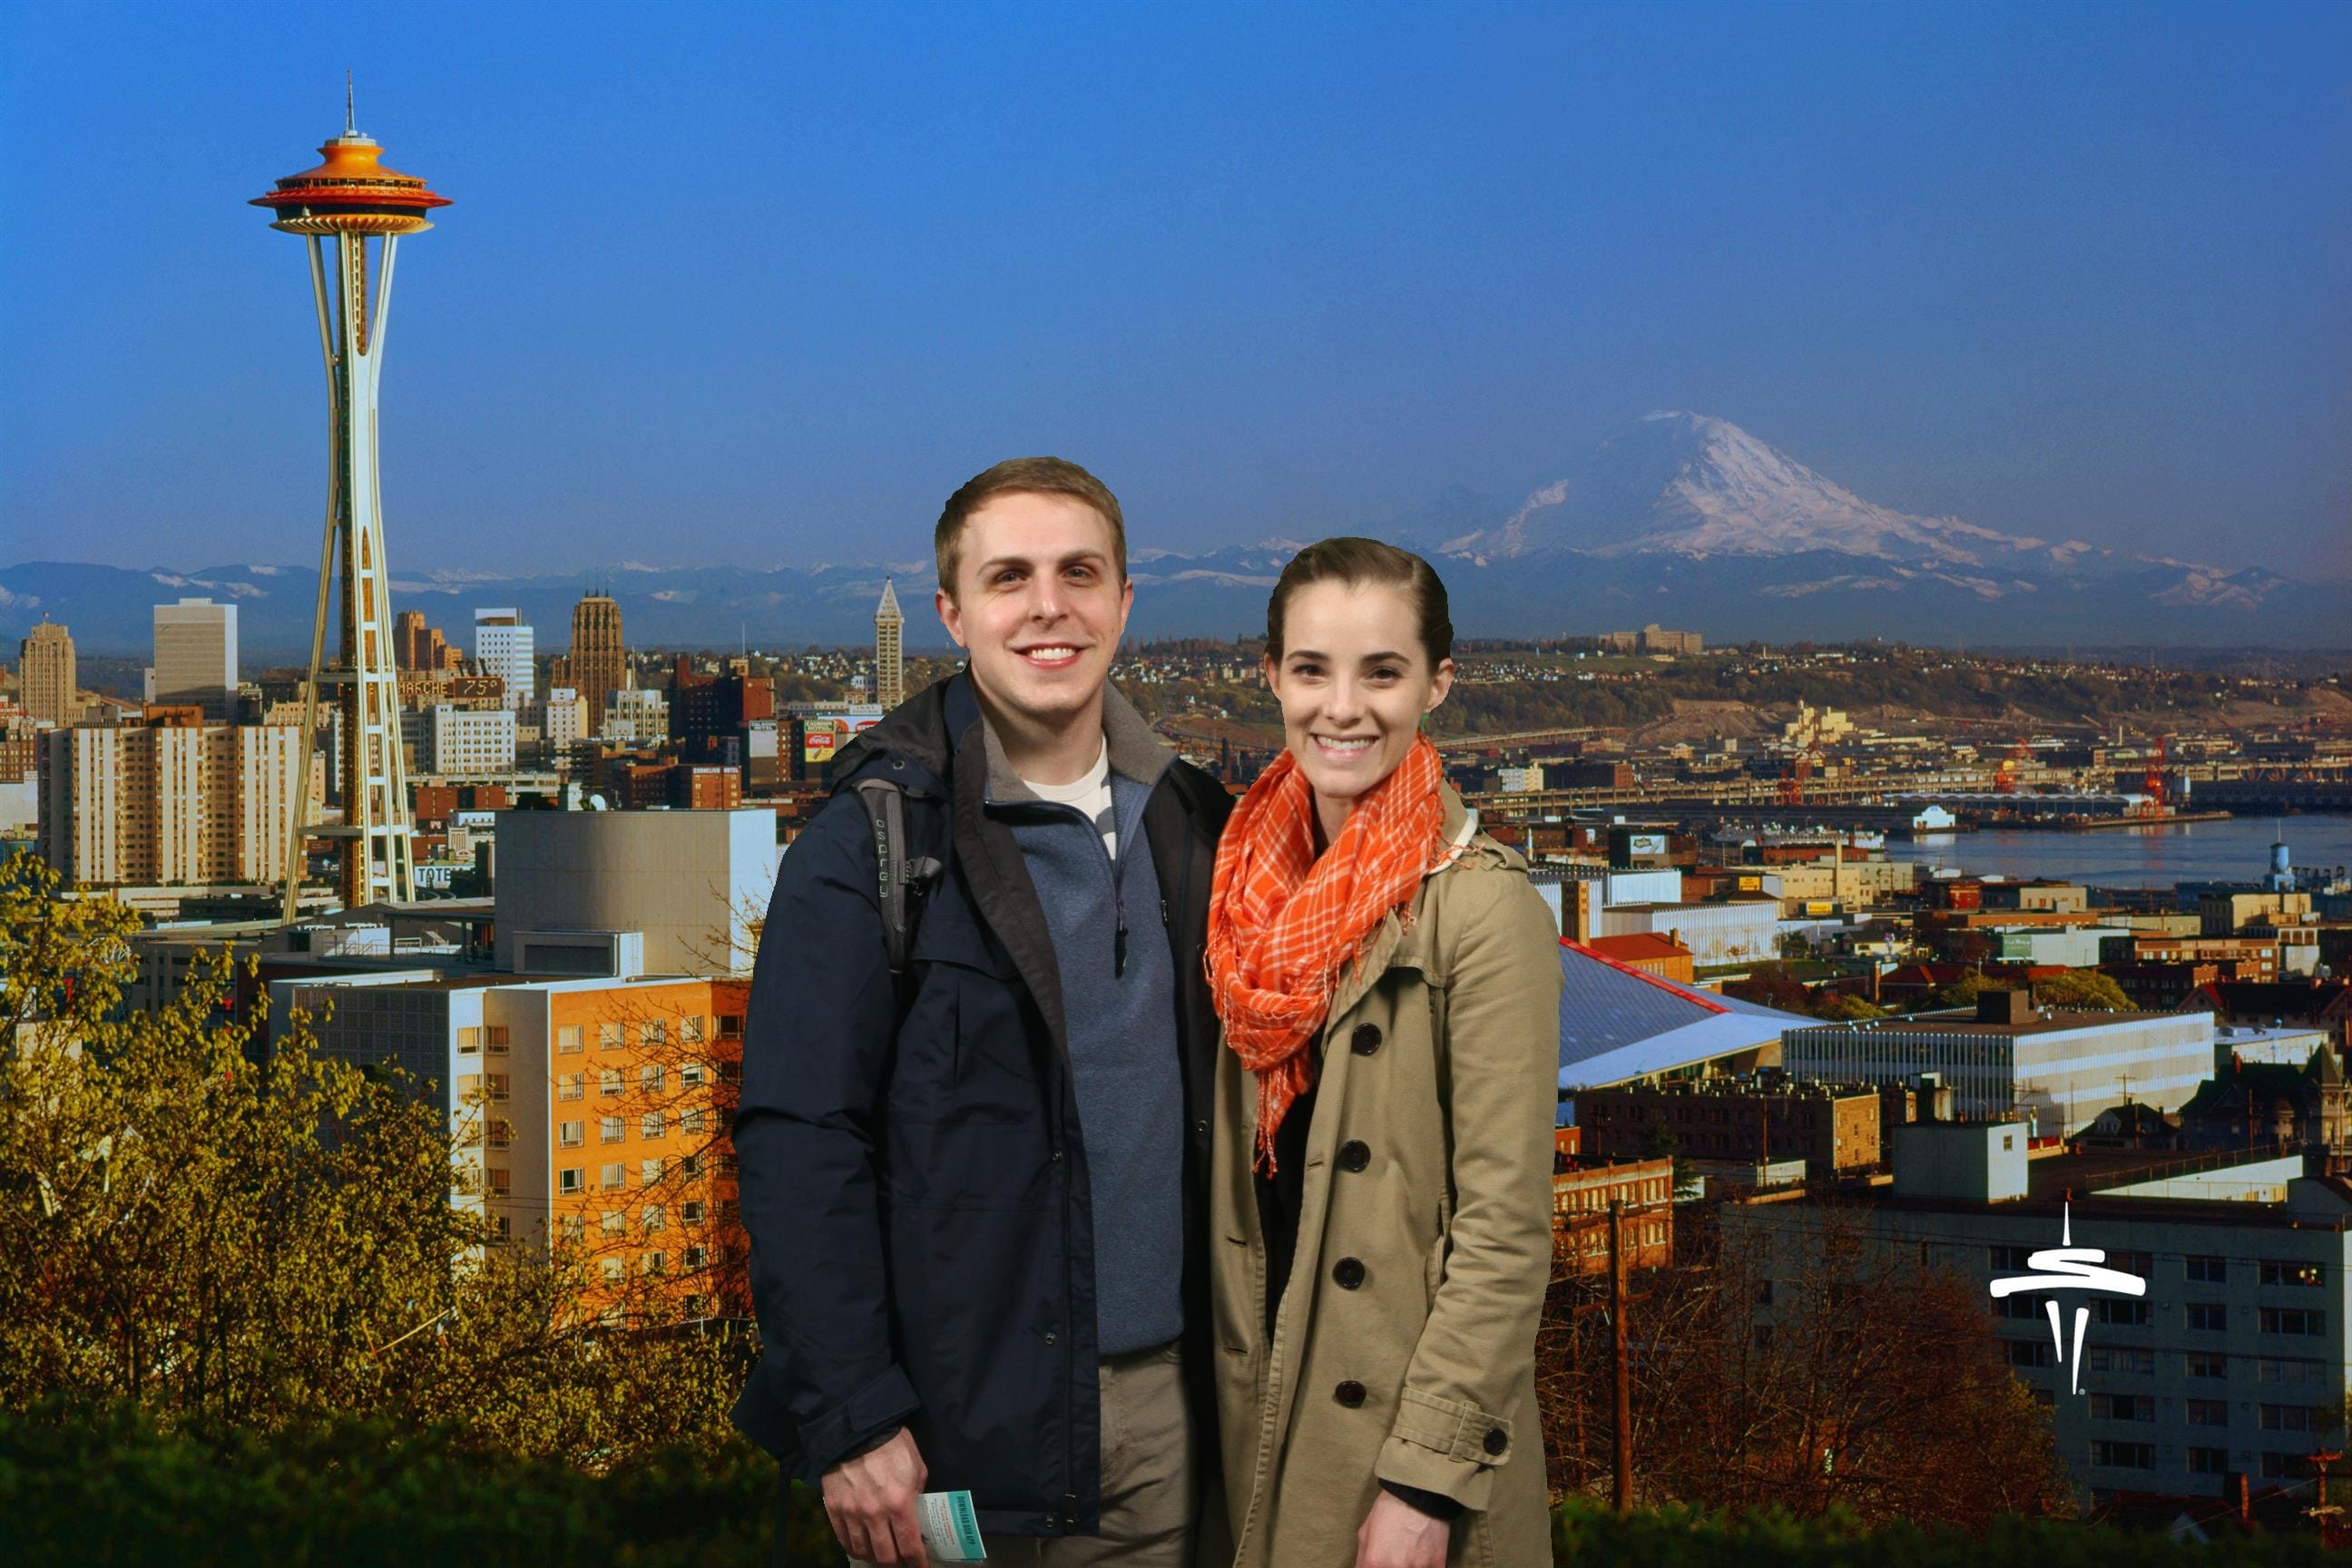 And here's our official green screen Space Needle photo. haha.